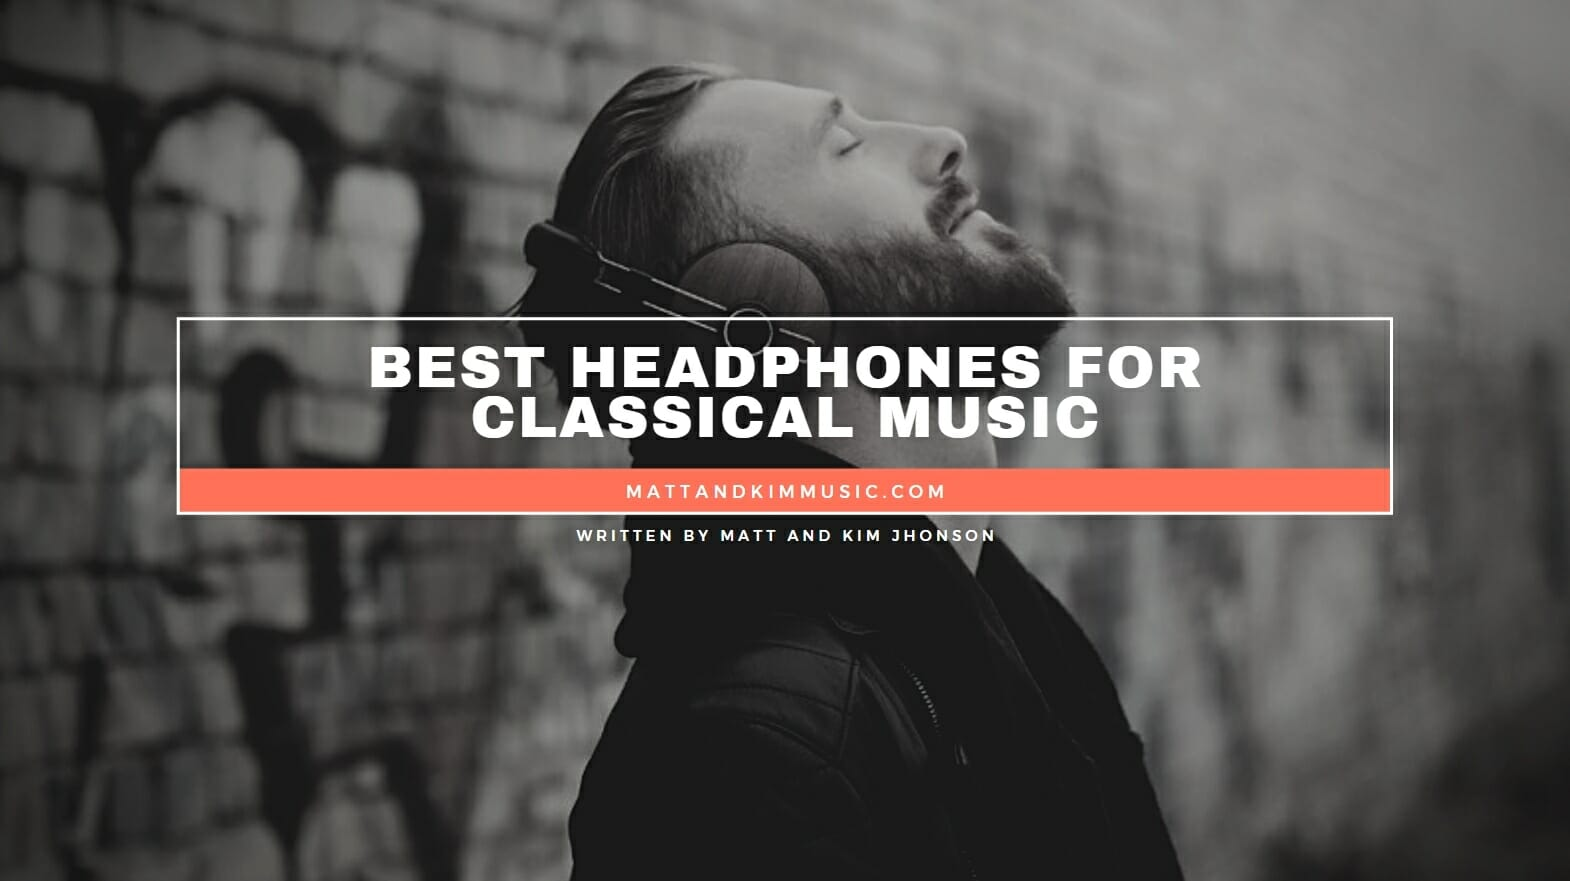 Best Headphones For Classical Music